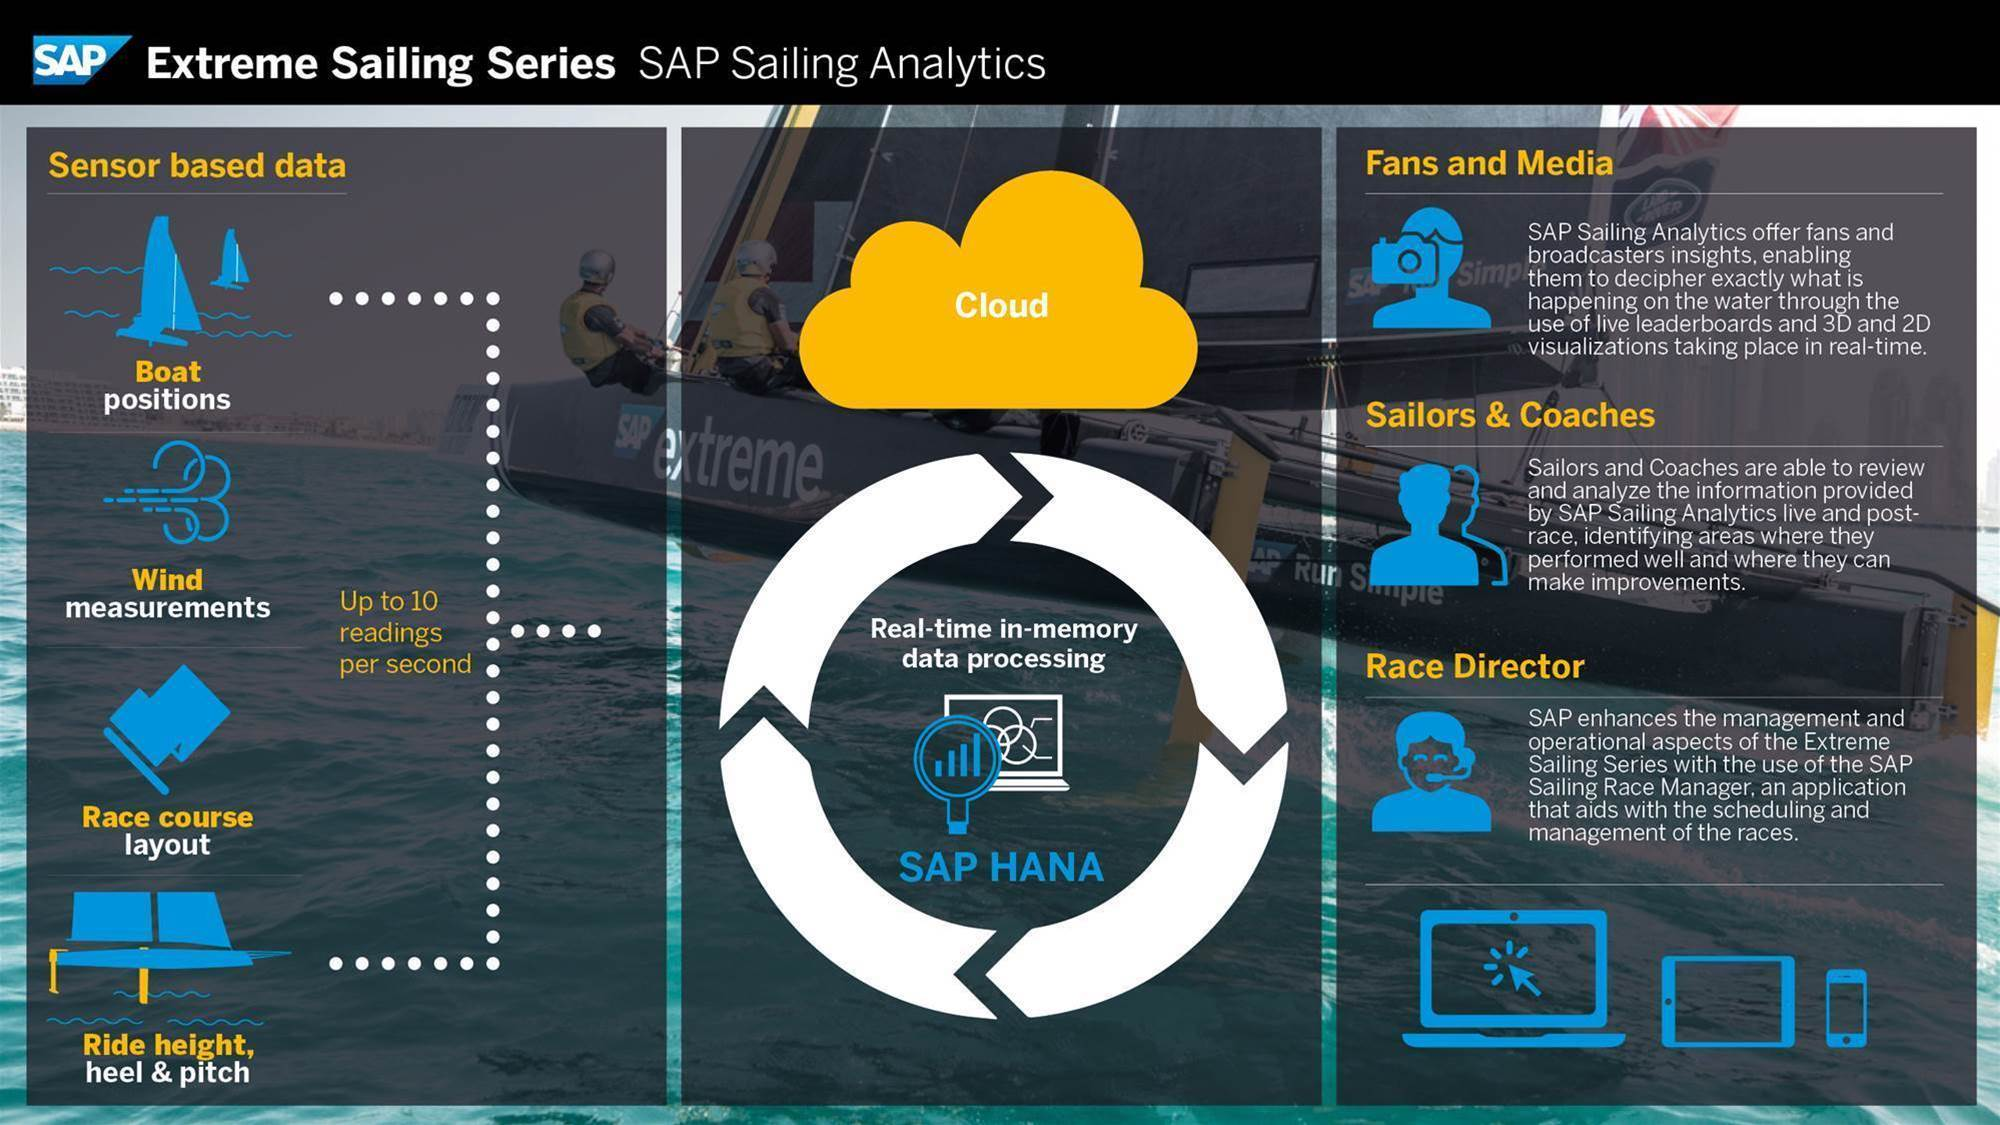 SAP Sailing Analytics